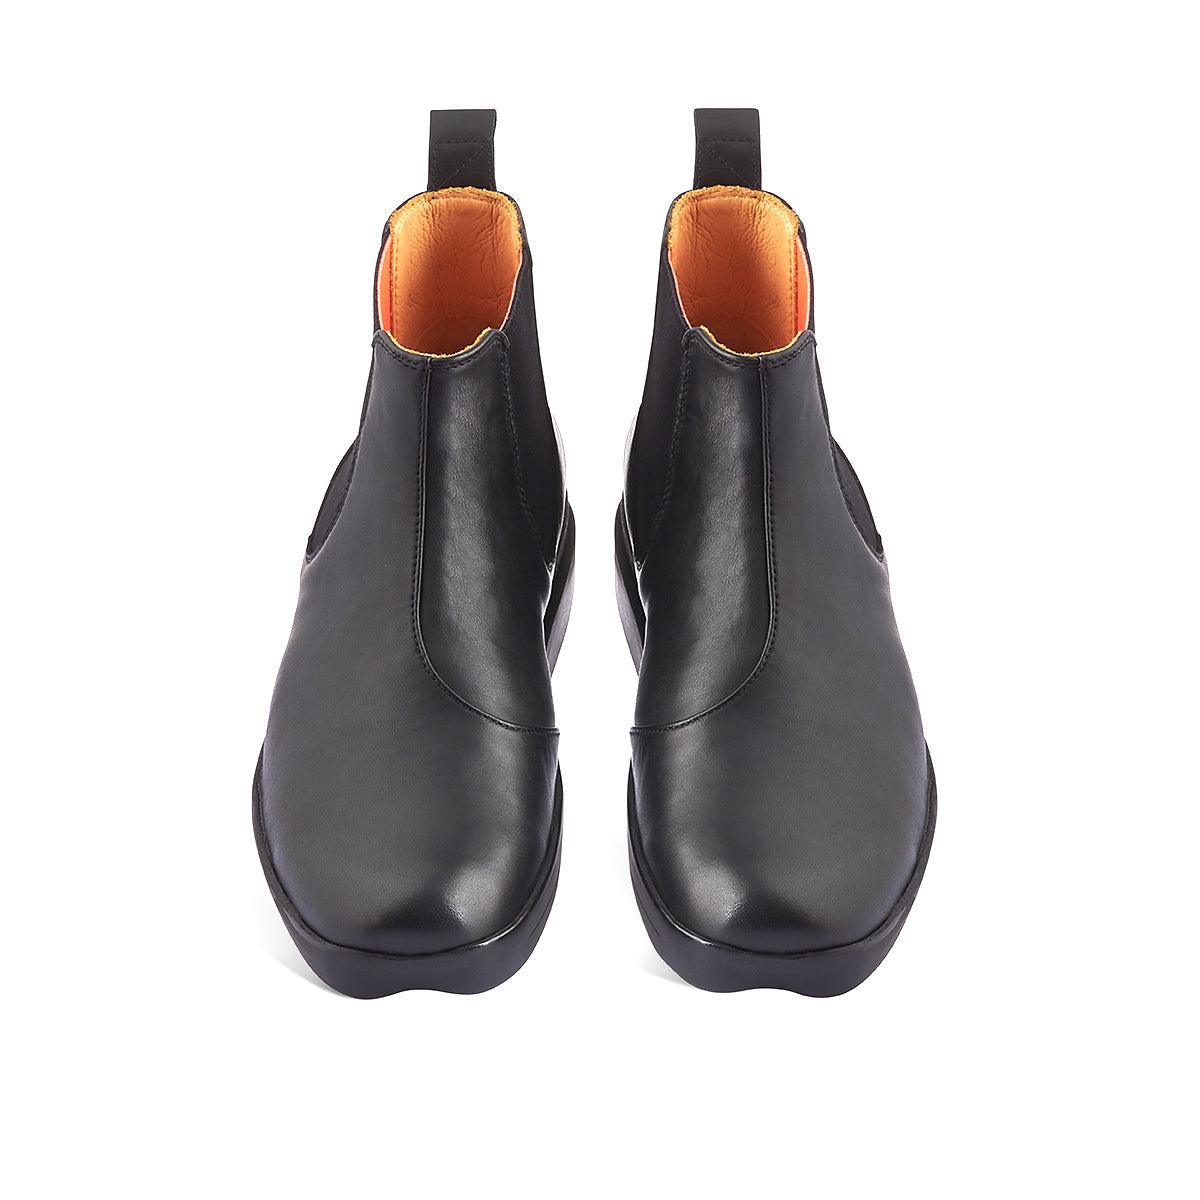 Tracey Neuls' contemporary Chelsea boot Jon returns to soleDevotion by popular demand. The sturdy yet supple leather upper sits beautifully on the chunky yet lightweight and cushioned rubber sole. This versatile ankle boot features an accommodating fit and reinforced elastic gussets with playful neon orange inner panels.